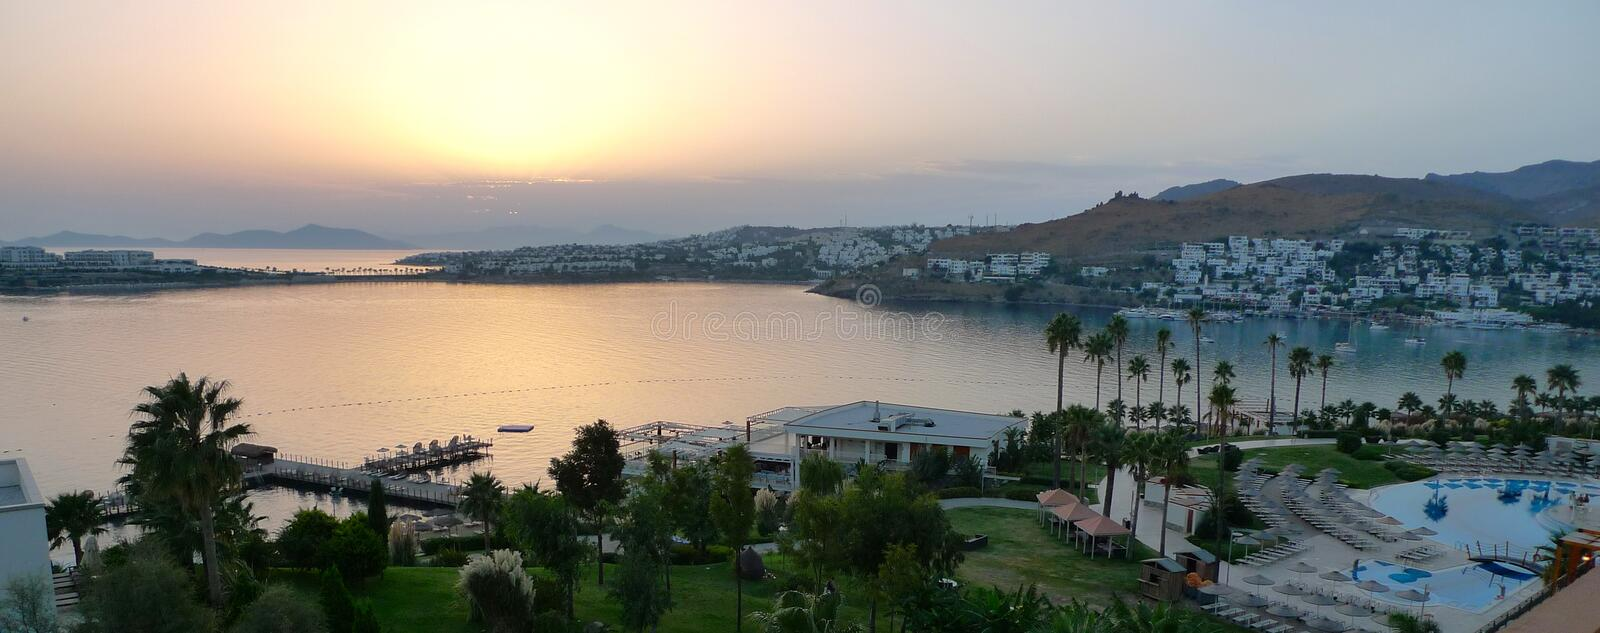 Sunset in Turkey Bodrum. Sunset in Bodrum Turkey, where life is very nice and quiet royalty free stock images